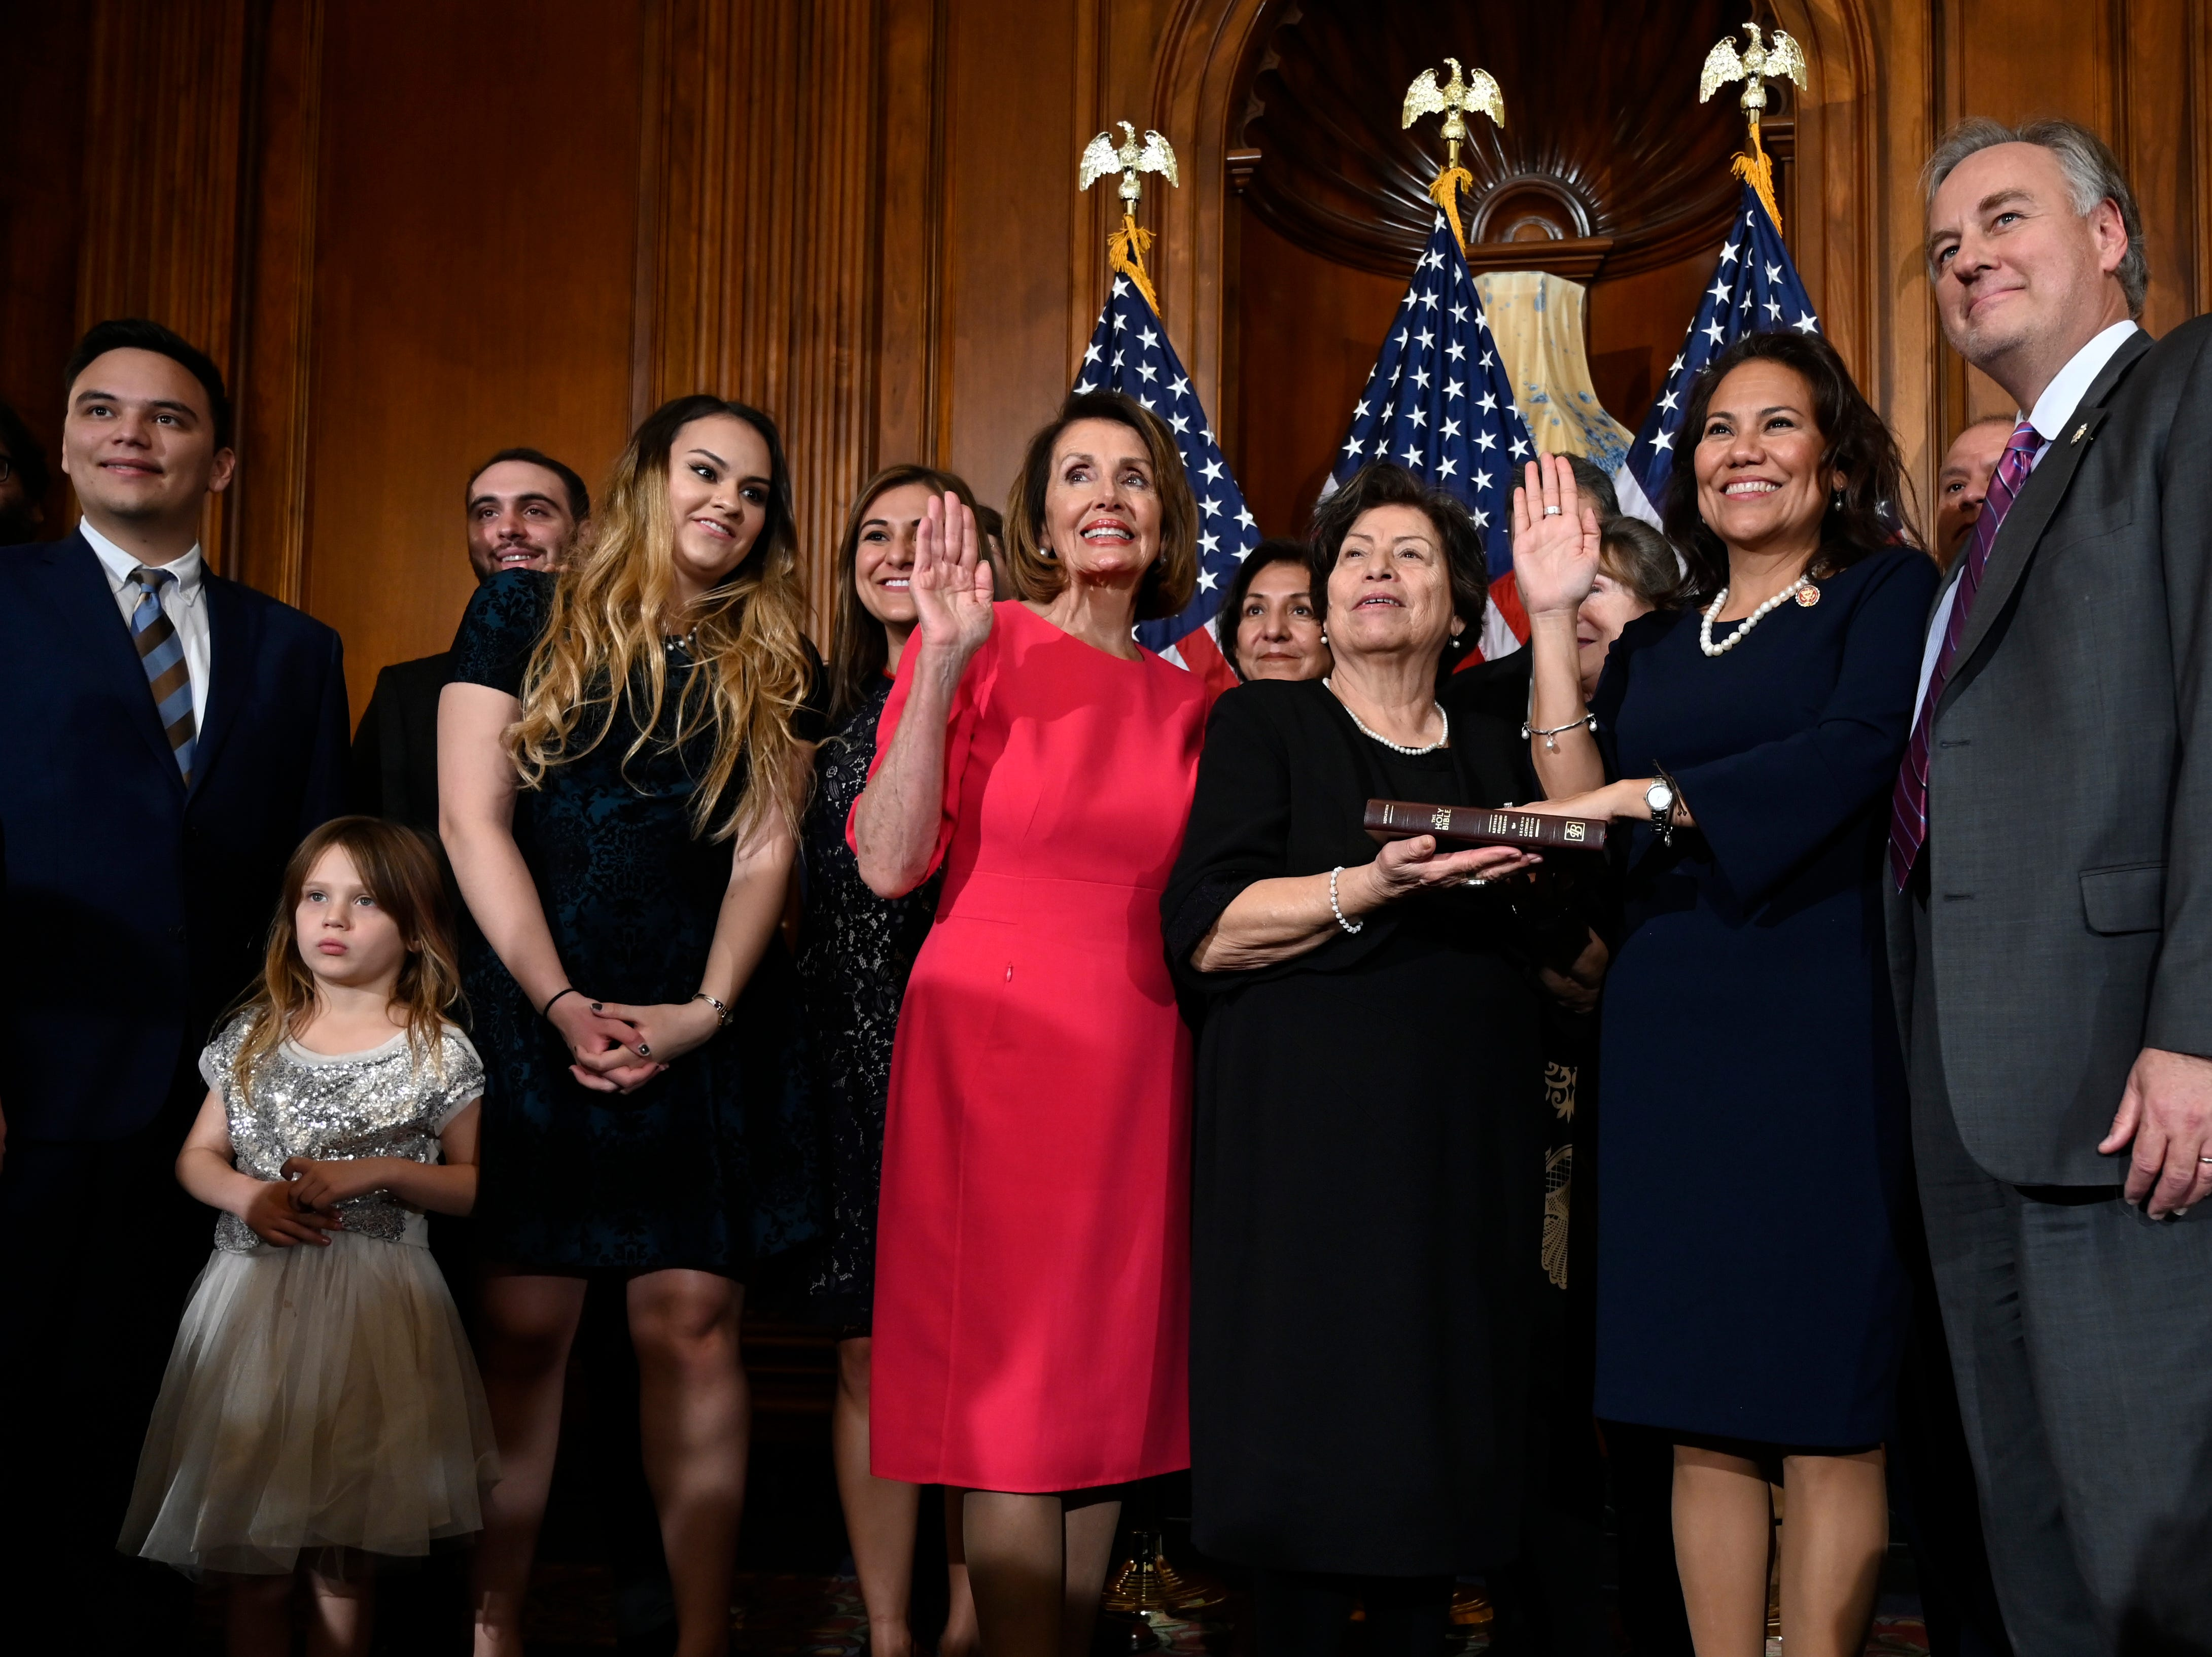 House Speaker Nancy Pelosi of California, left, poses during a ceremonial swearing-in with U.S. Rep. Veronica Escobar, D-El Paso, on Capitol Hill in Washington on Thursday, Jan. 3, 2019, during the opening session of the 116th Congress.